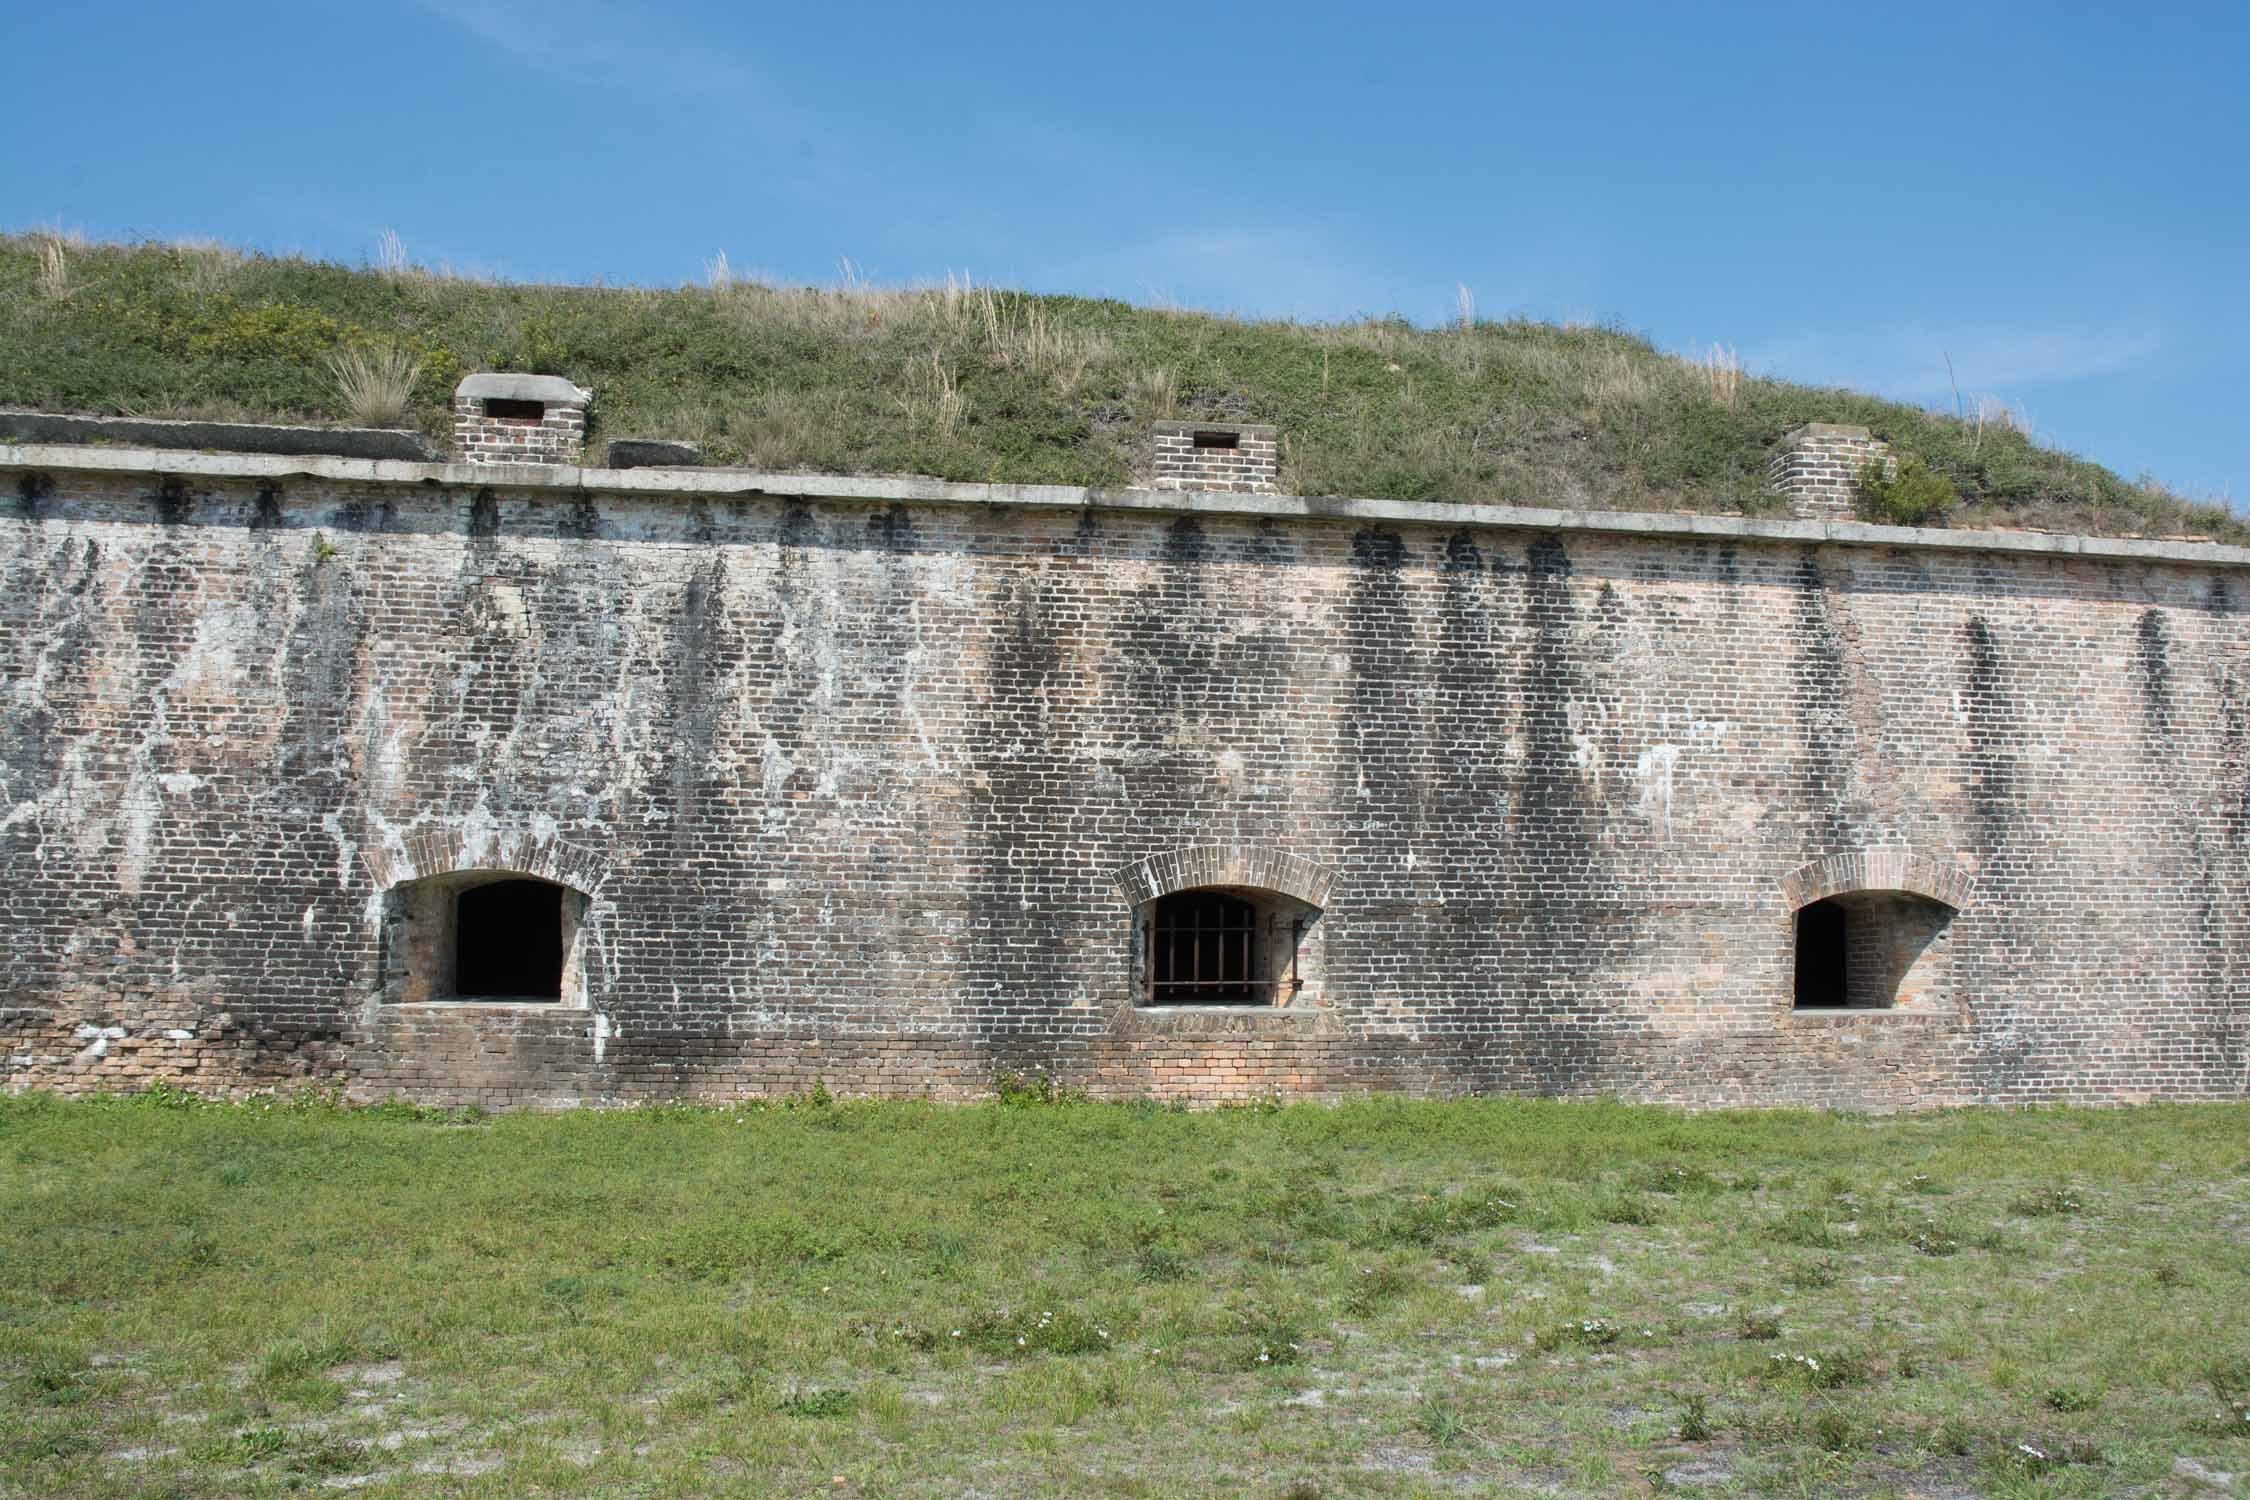 Fort Pickens has withstood the test of time, at least from the outside